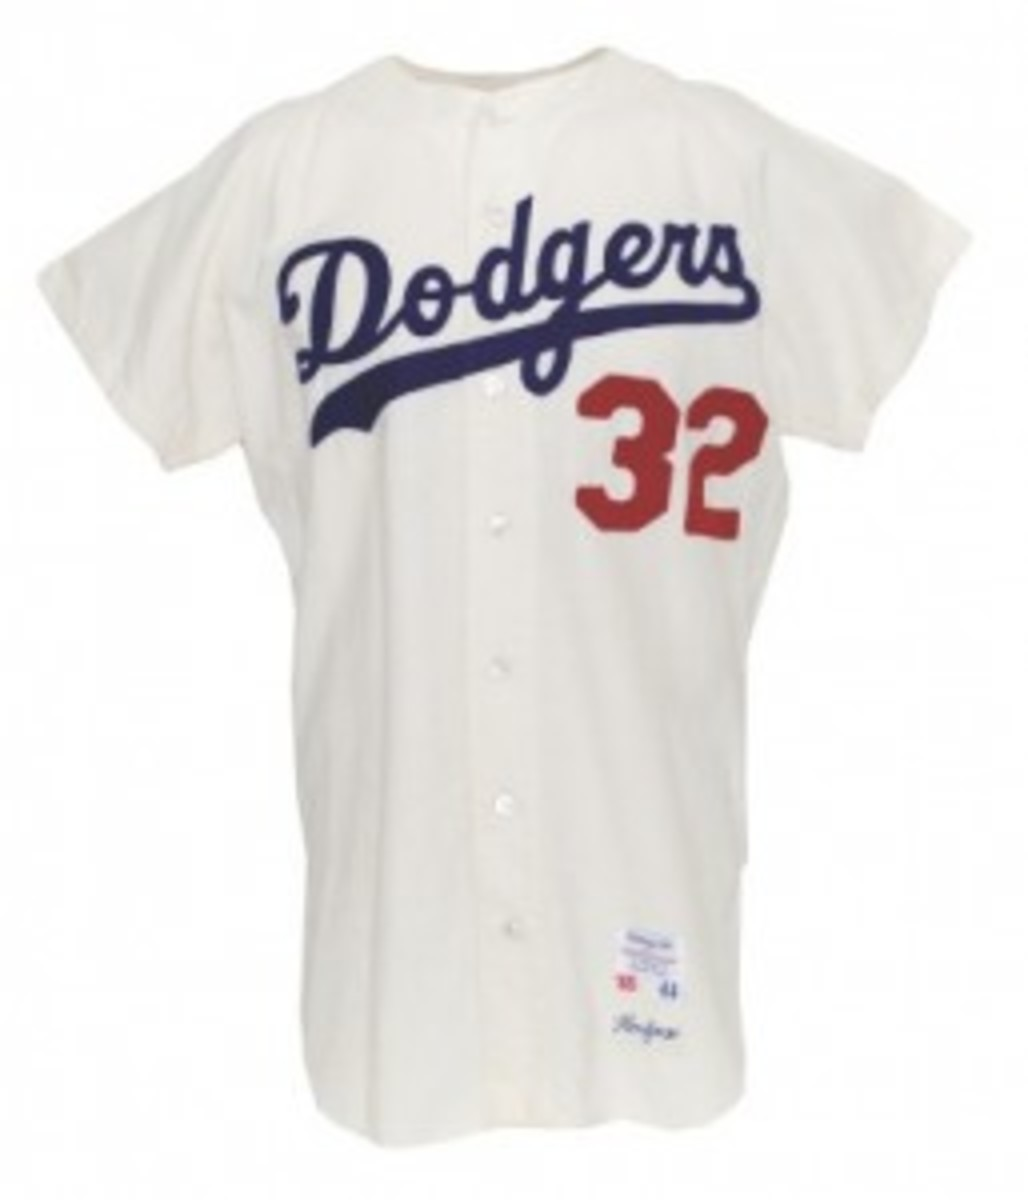 This 1965 Koufax jersey sold for $166,818